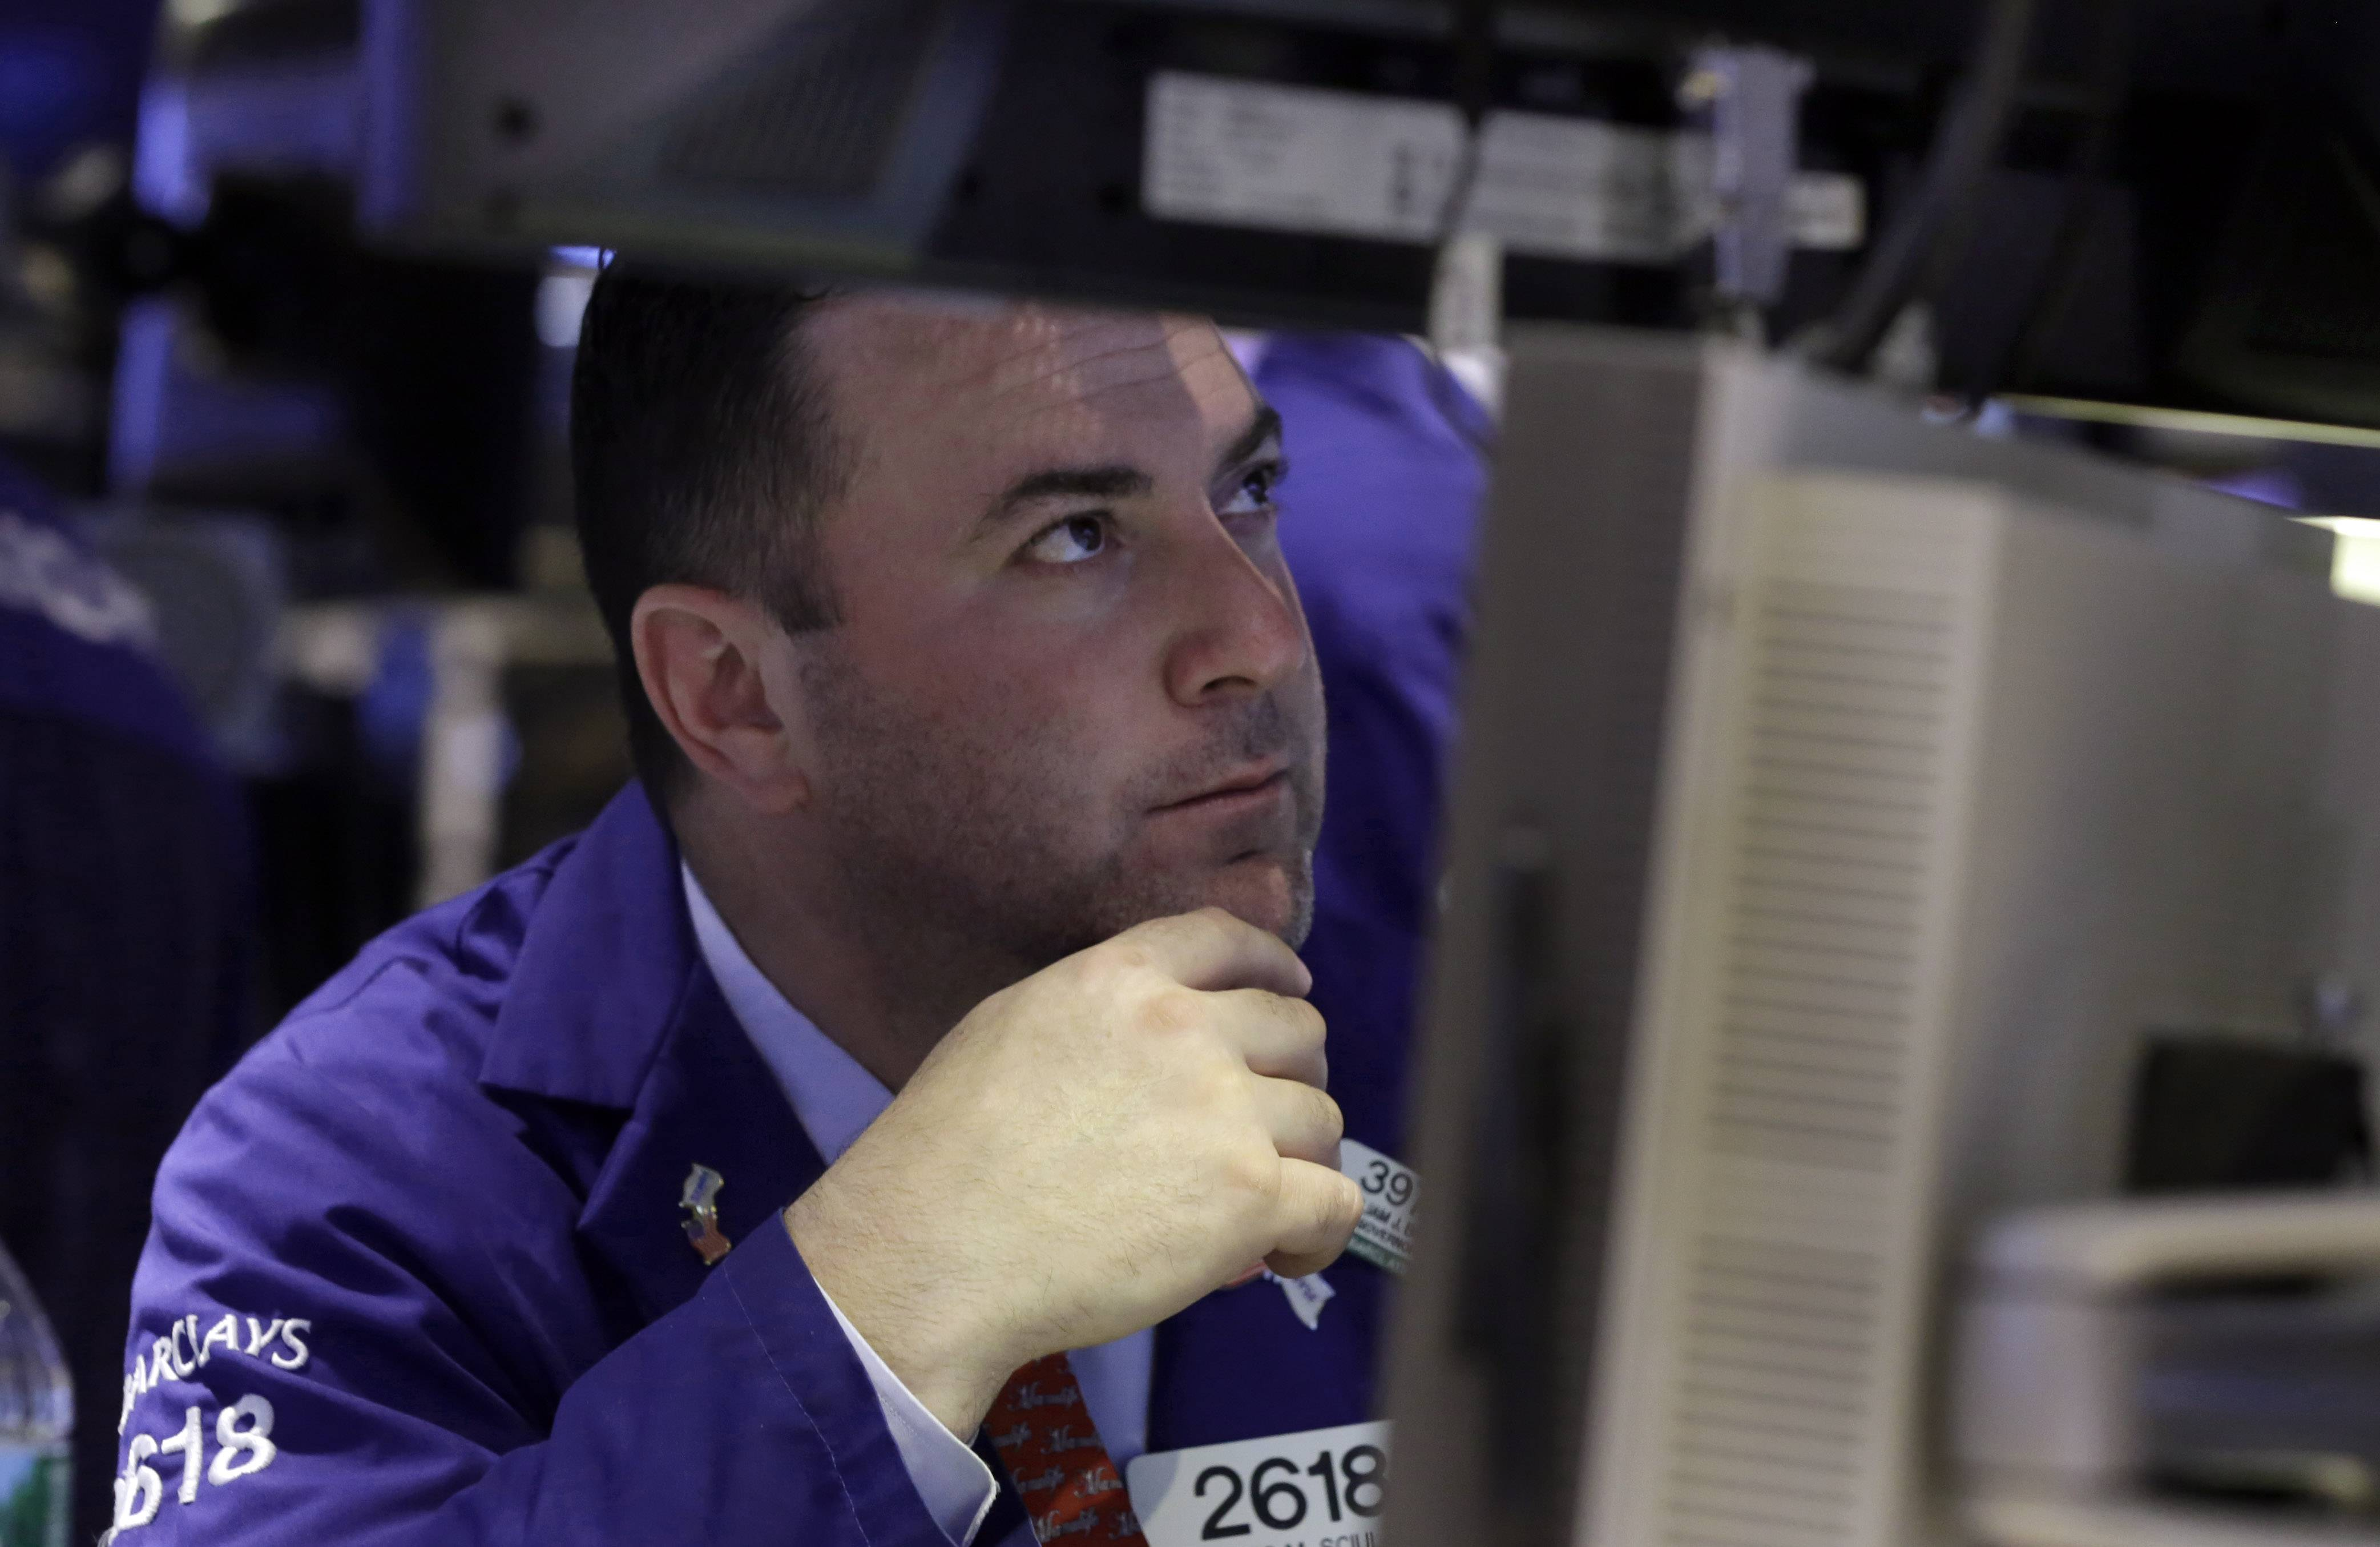 U.S. stock indexes ended slightly below the record levels they reached last week as investors assessed news from big corporations. Wisconsin Energy fell 4 percent and General Electric fell 1 percent after the companies said they had made acquisitions. The Standard & Poor's 500 index fell a fraction of a point.